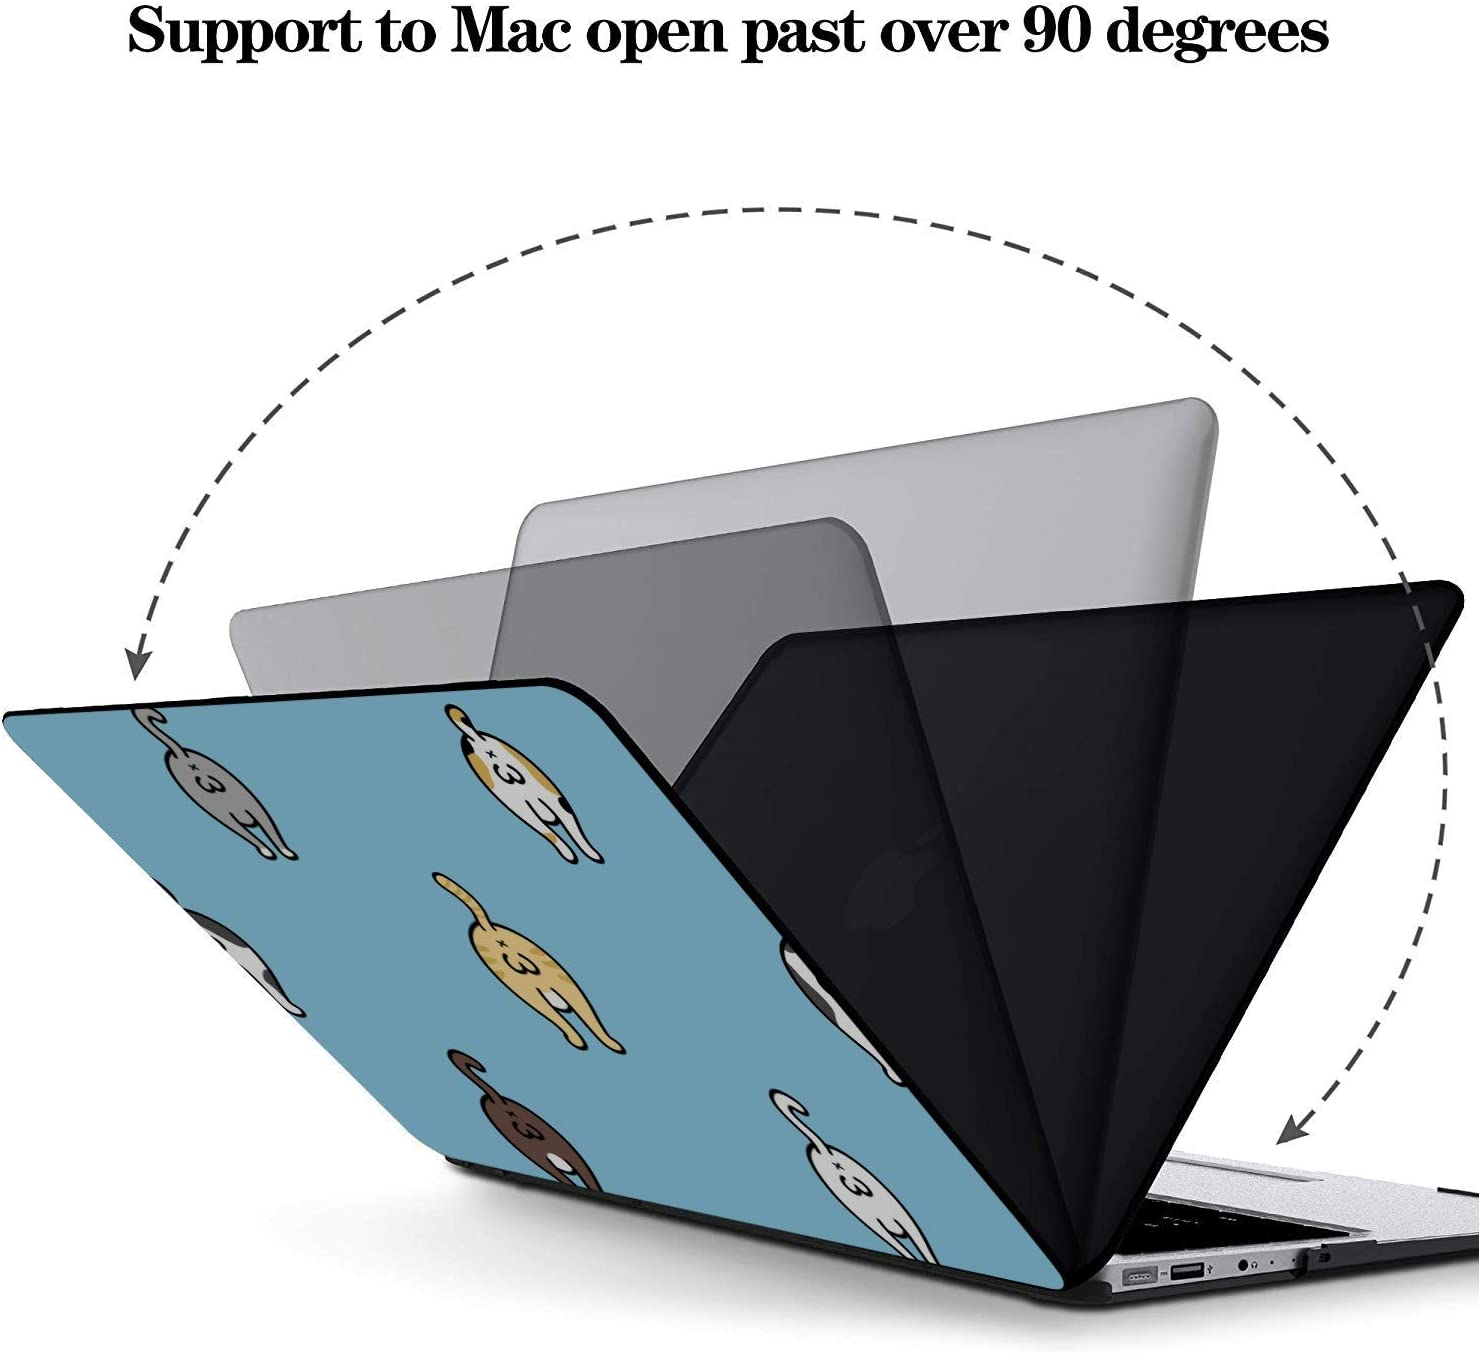 MacBook Pro 15 Cover Cat Funny Breed Balls Plastic Hard Shell Compatible Mac Air 11 Pro 13 15 MacBook Pro 13inch Case Protection for MacBook 2016-2019 Version